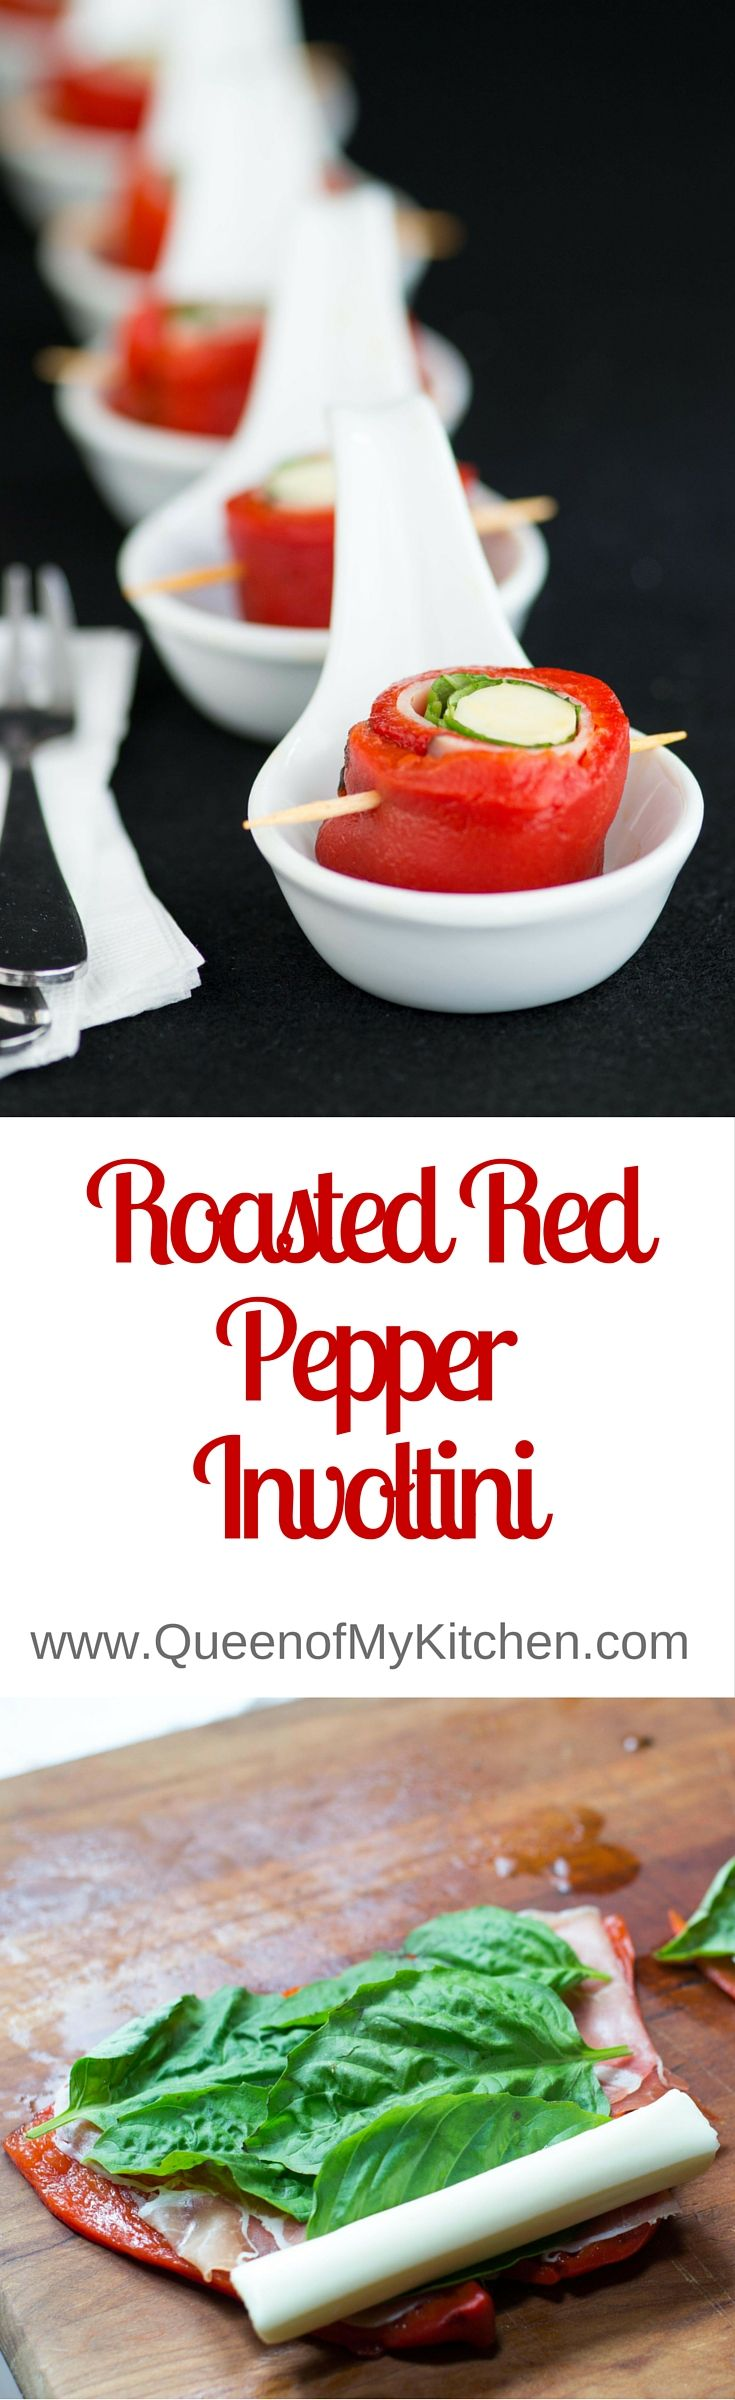 Roasted Red Pepper Involtini – a no cook appetizer that's delicious, easy, elegant, colorful, gluten-free, and low in calories. Great on antipasto platters.